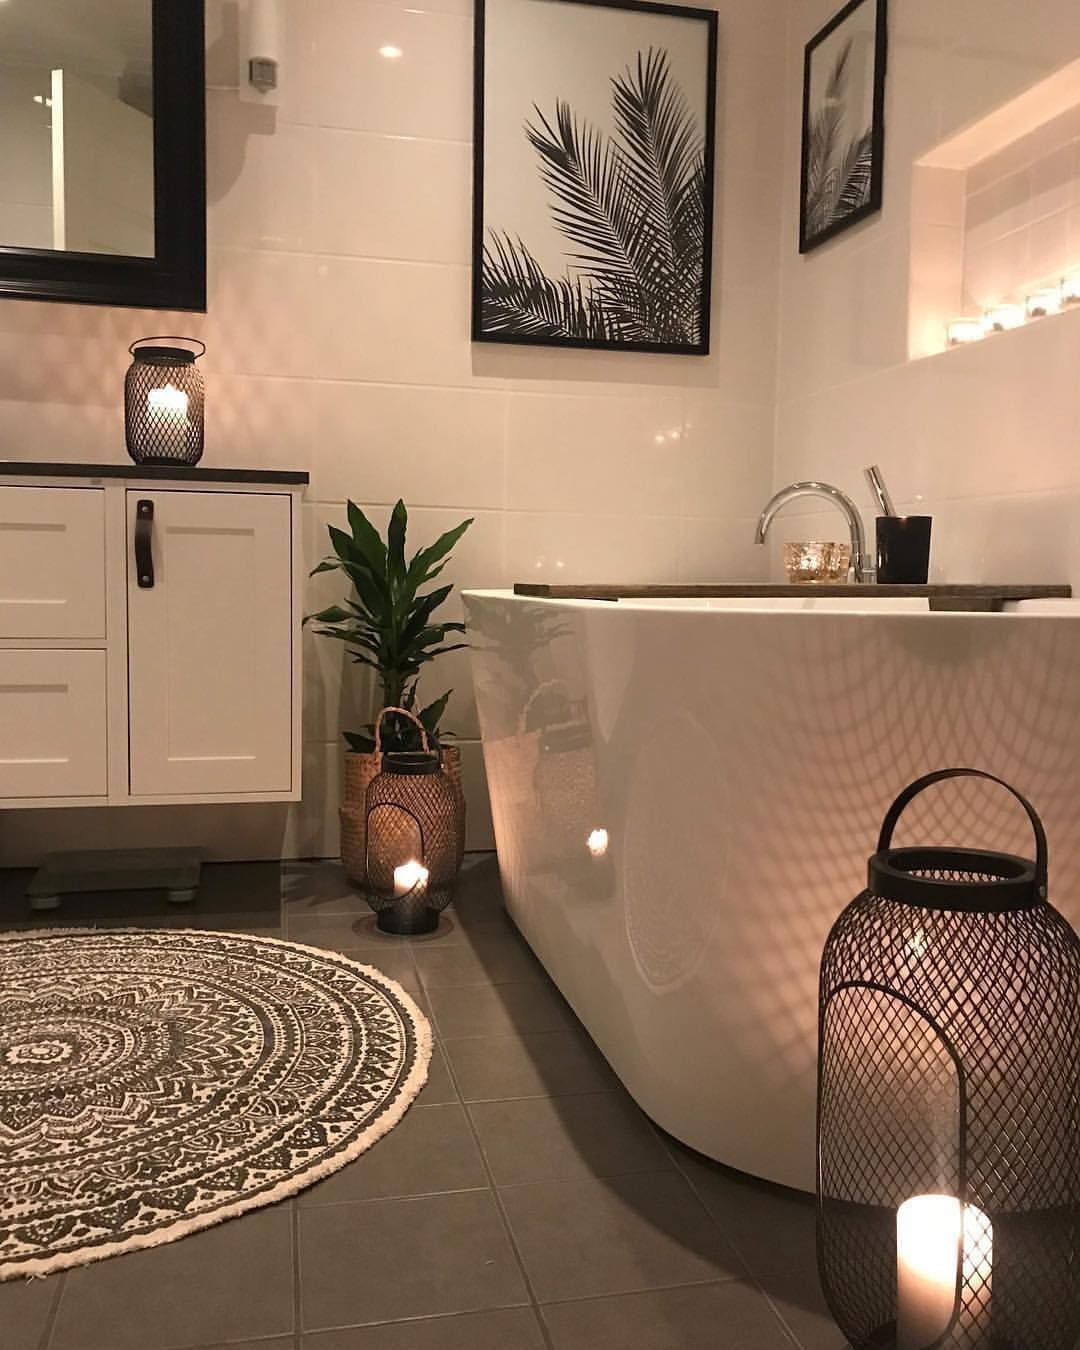 Schlafzimmer Wandfarbe Schwarz 13: Pin By Annsley Marie On Bathroom In 2018